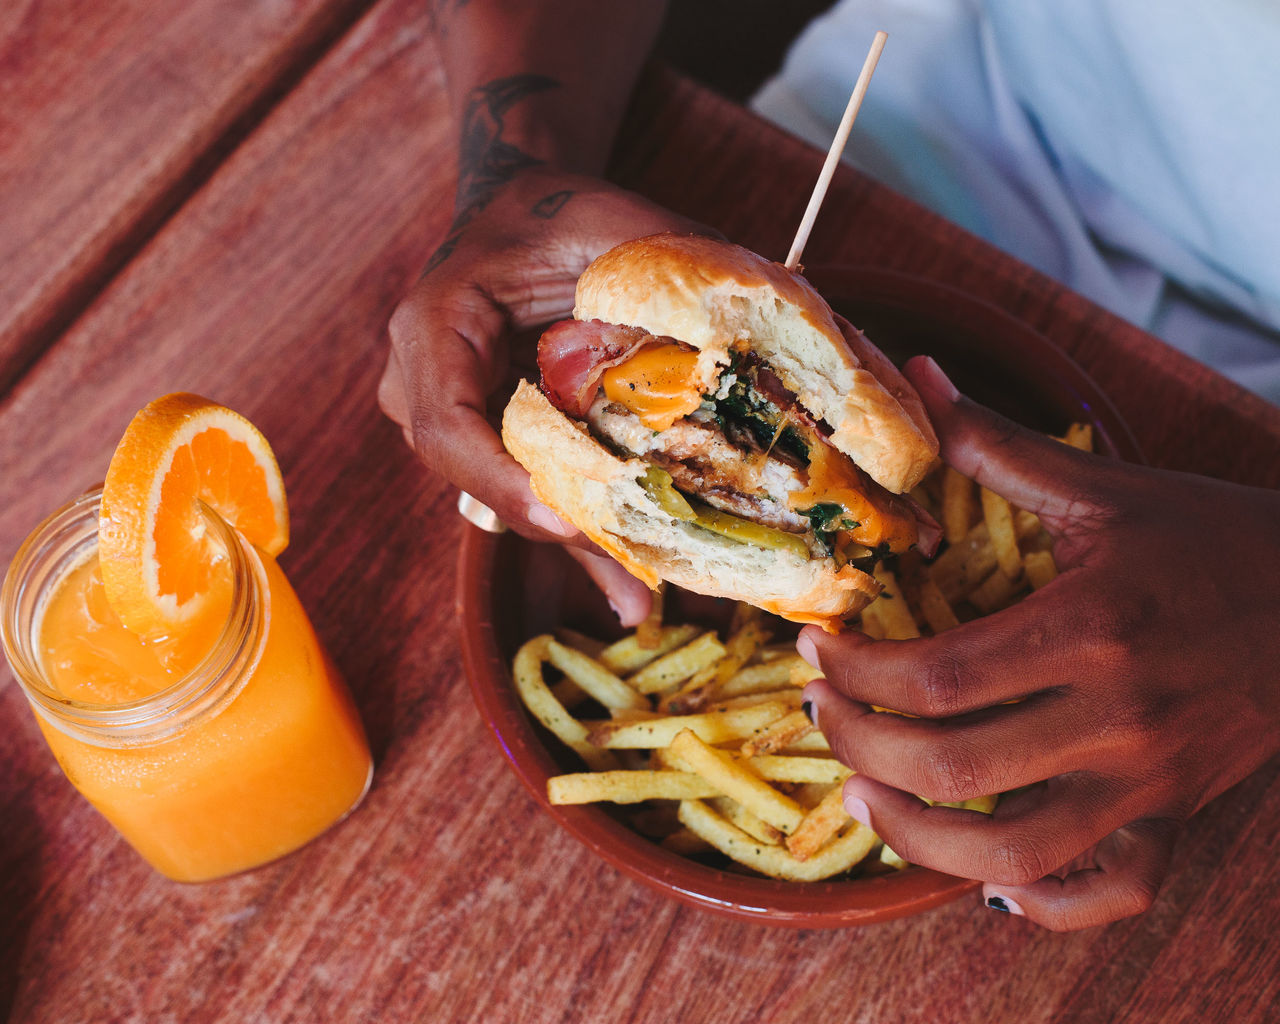 Midsection Of Man Eating Burger At Table